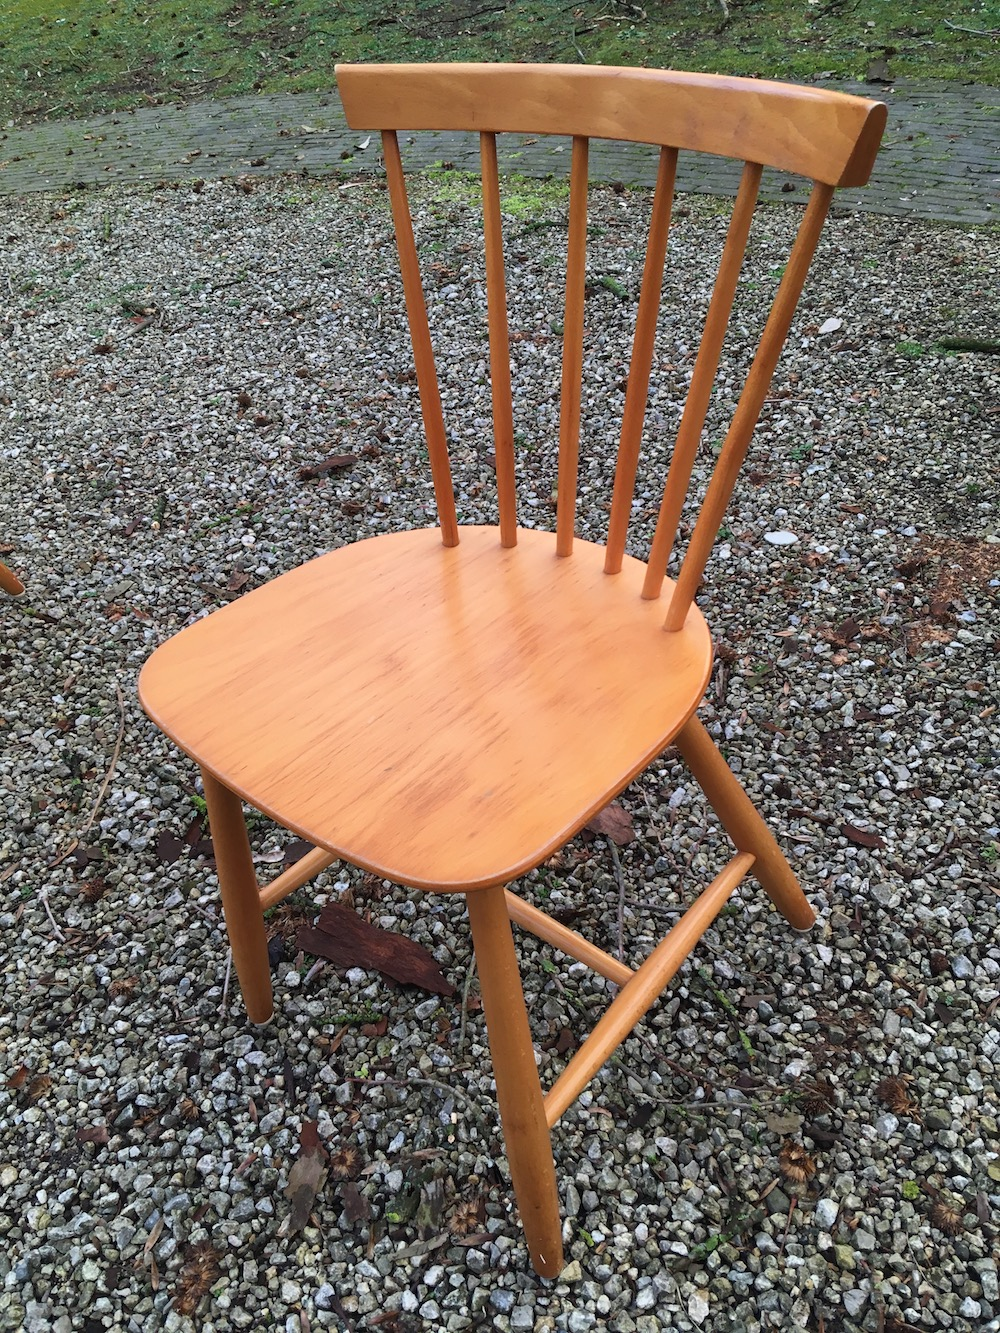 Poul Volther, Danish chairs, Scandinavian design, Danish design,spine chairs, wooden chairs, vintage chairs